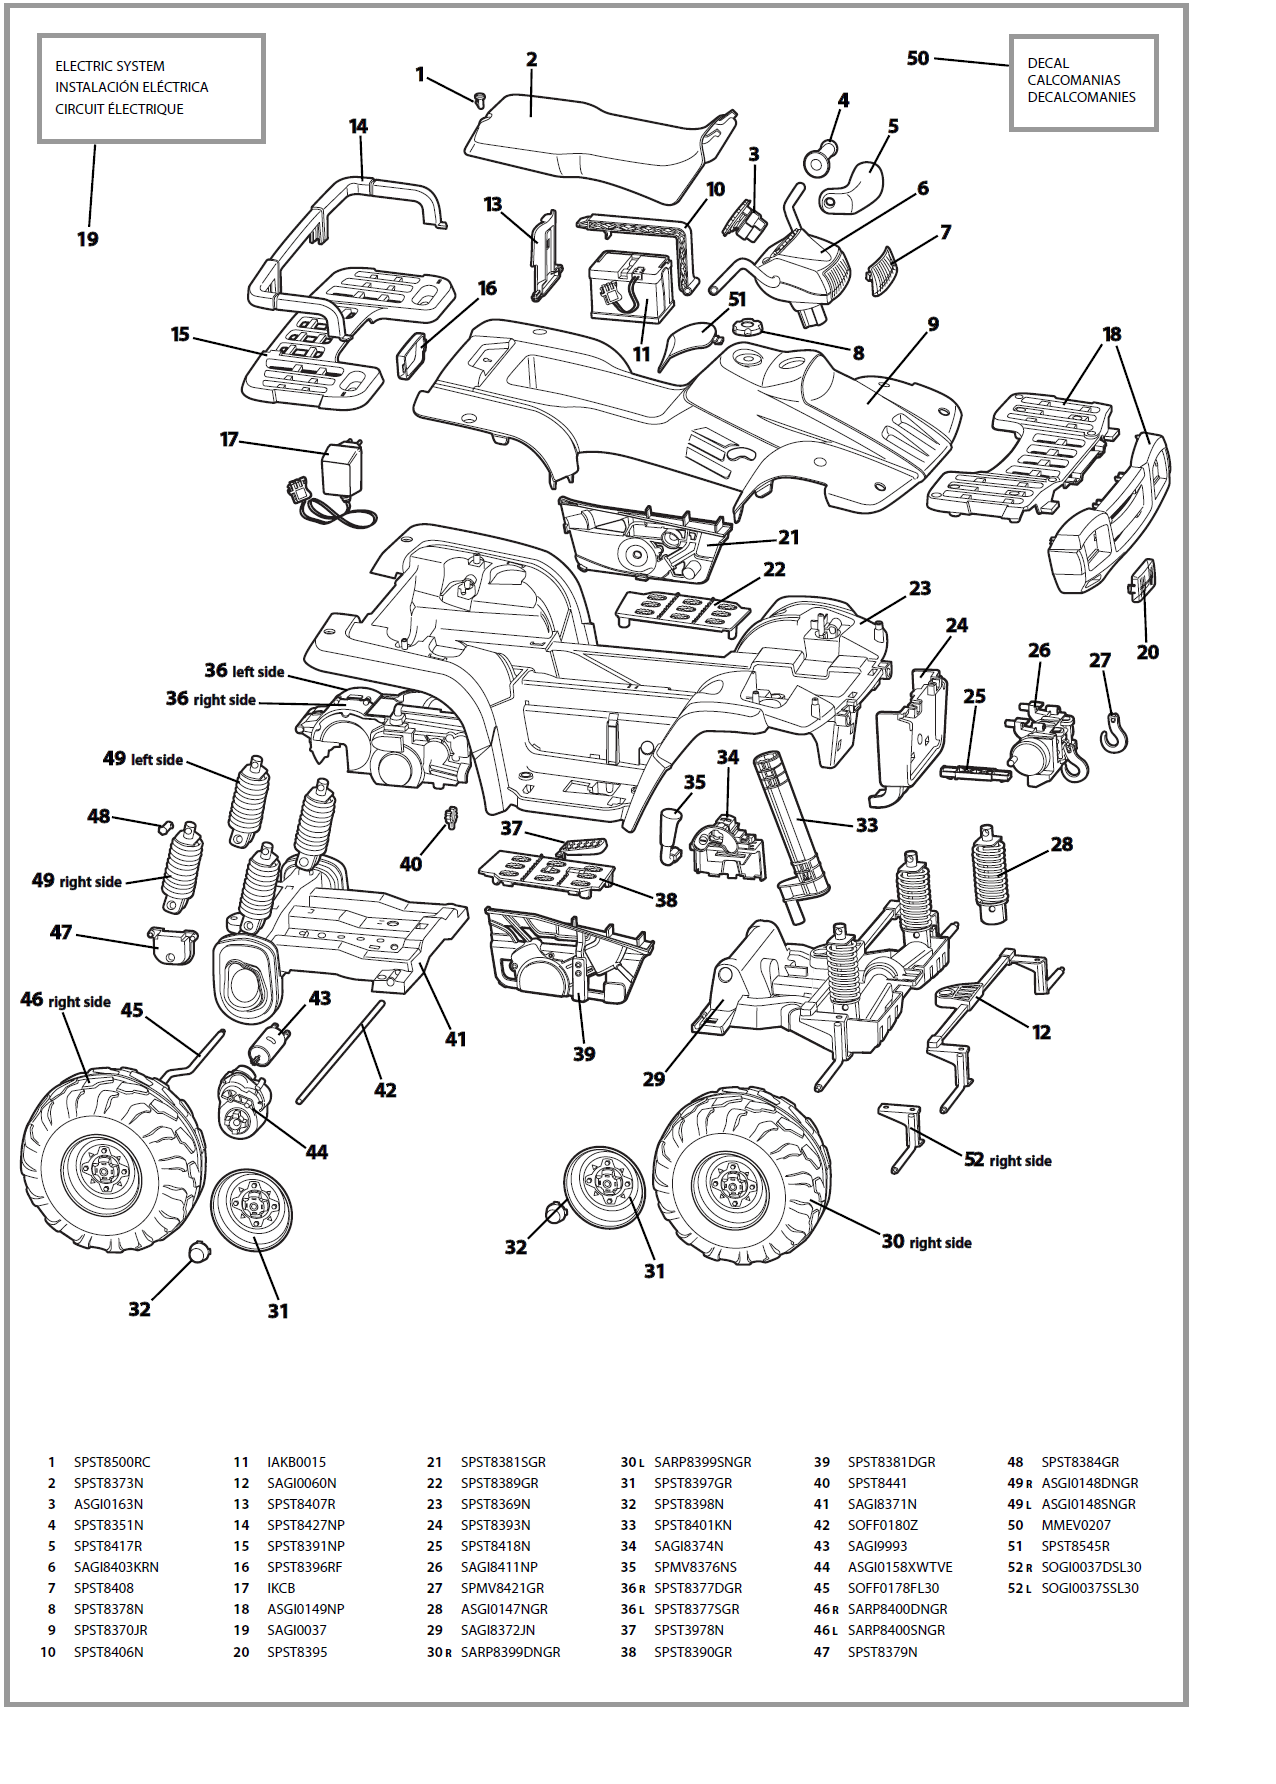 IGOD0013 parts diagram